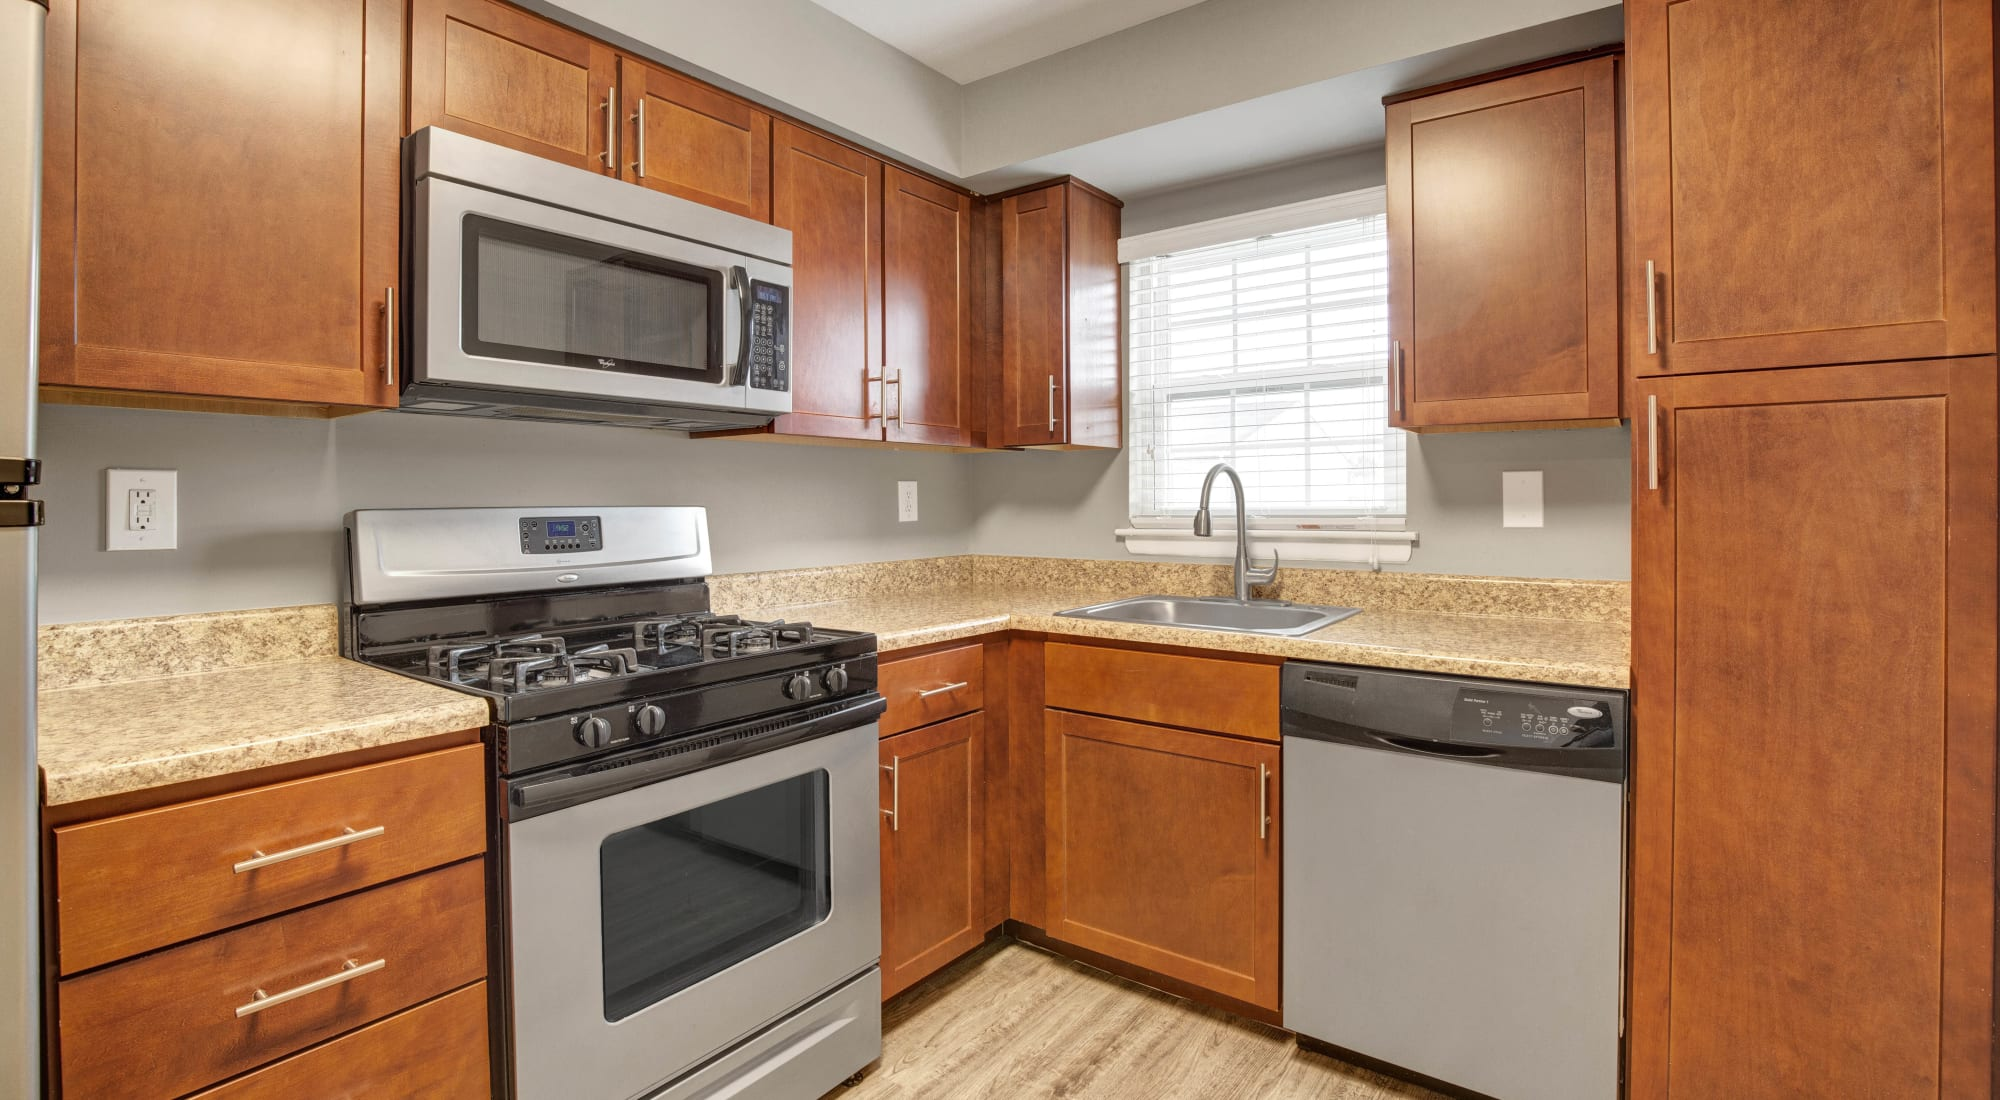 Photo gallery at Middlebrooke Apartments & Townhomes in Westminster, Maryland